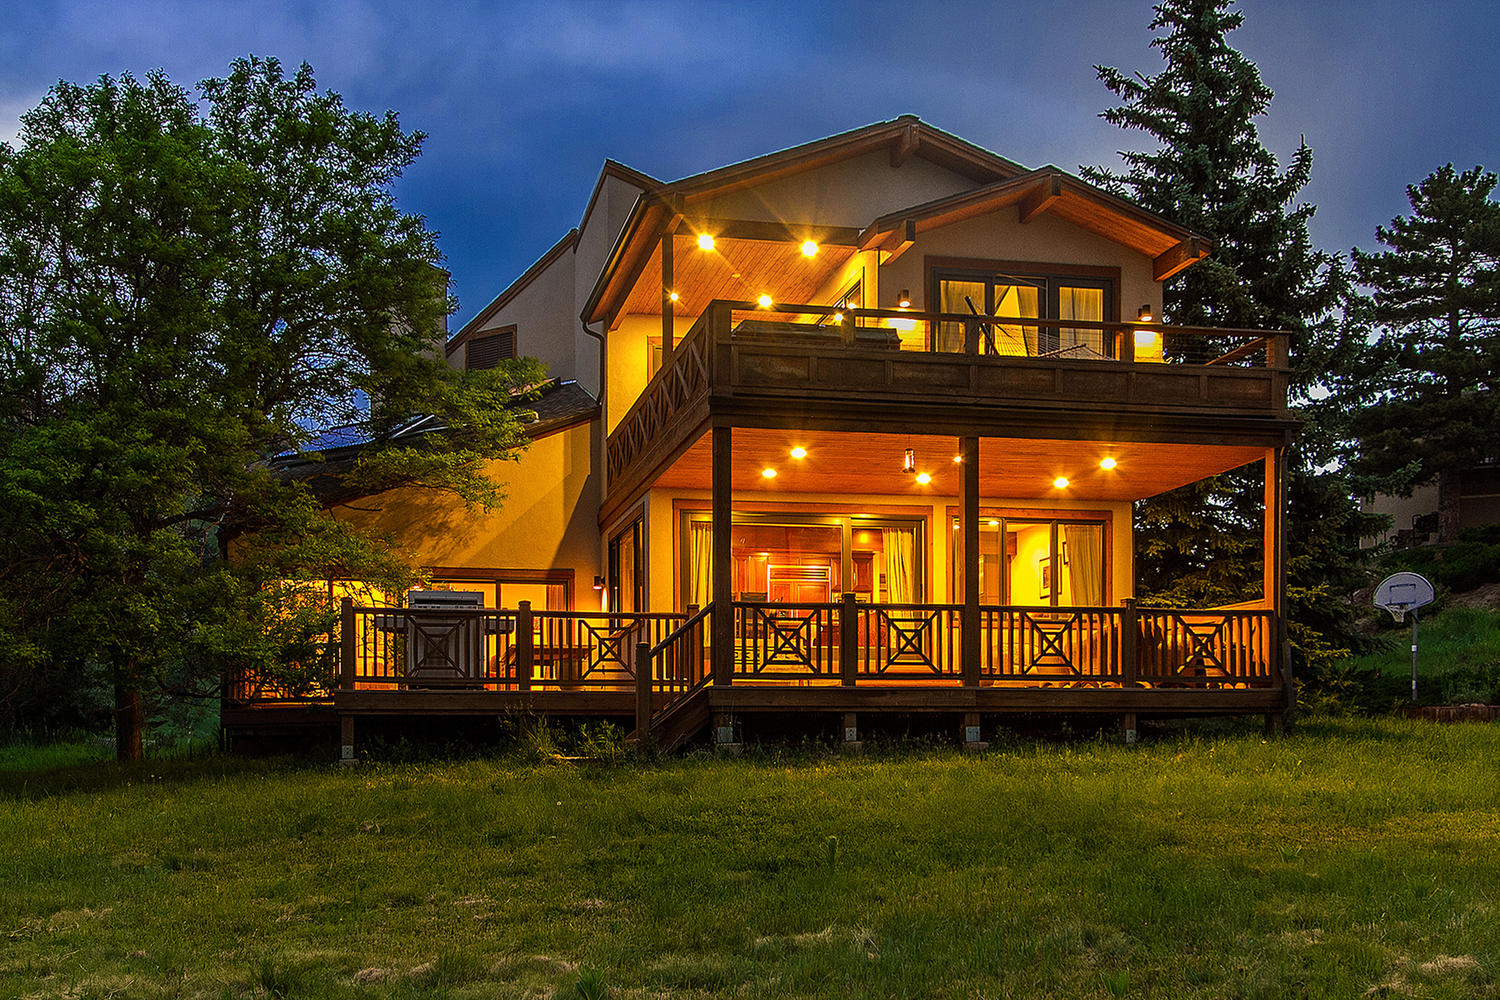 Single Family Home for Sale at 63 Boulder View Lane Boulder, Colorado, 80304 United States